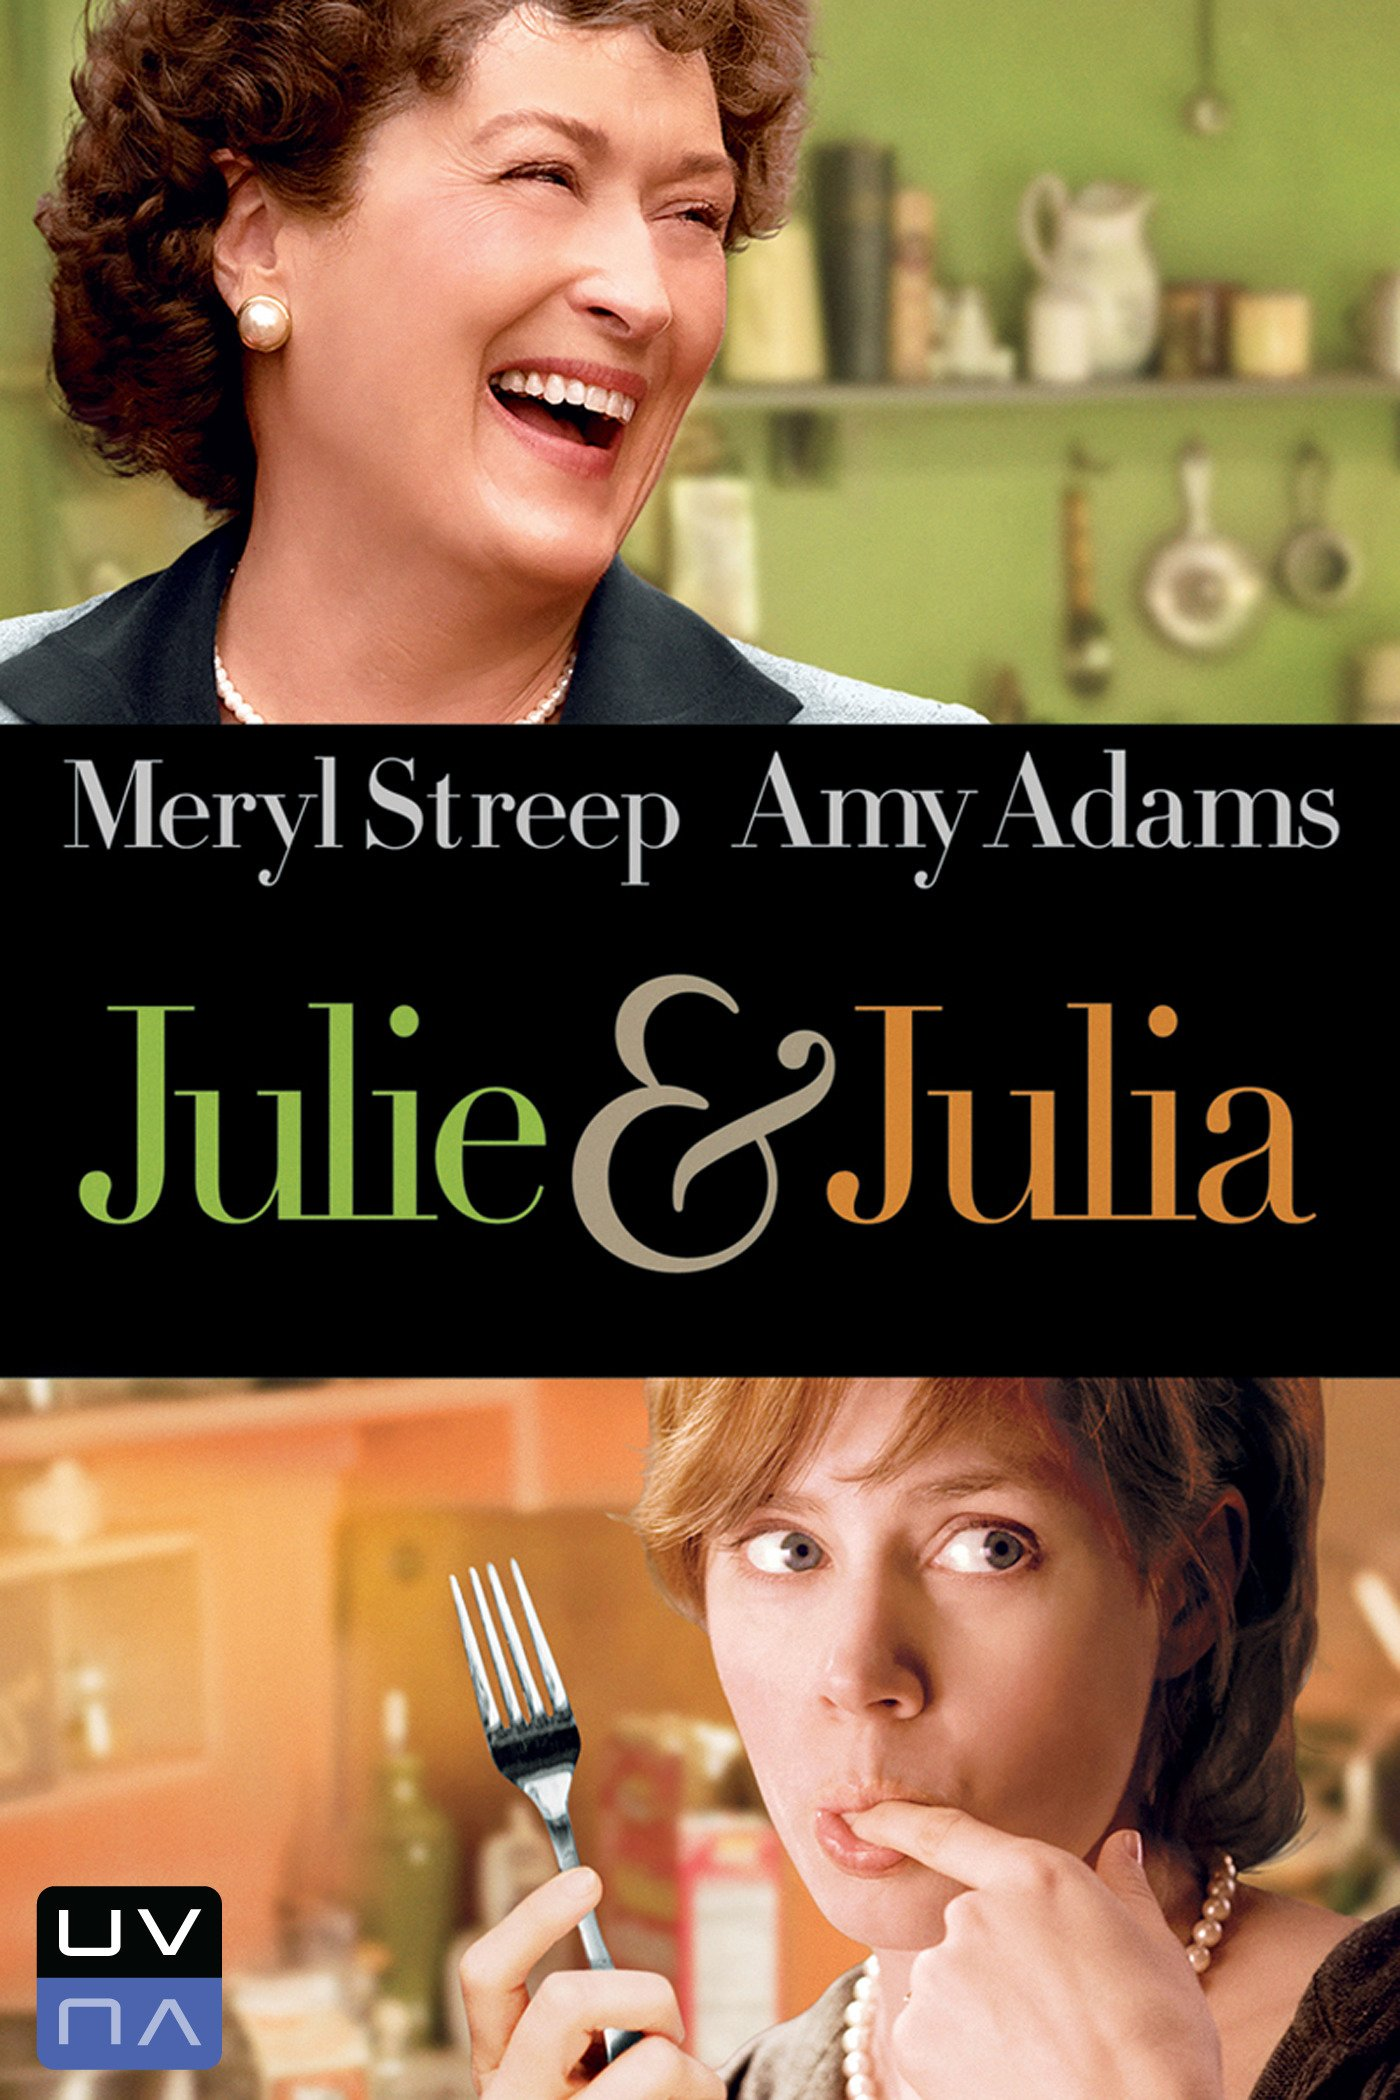 watch julie and julia online free streaming